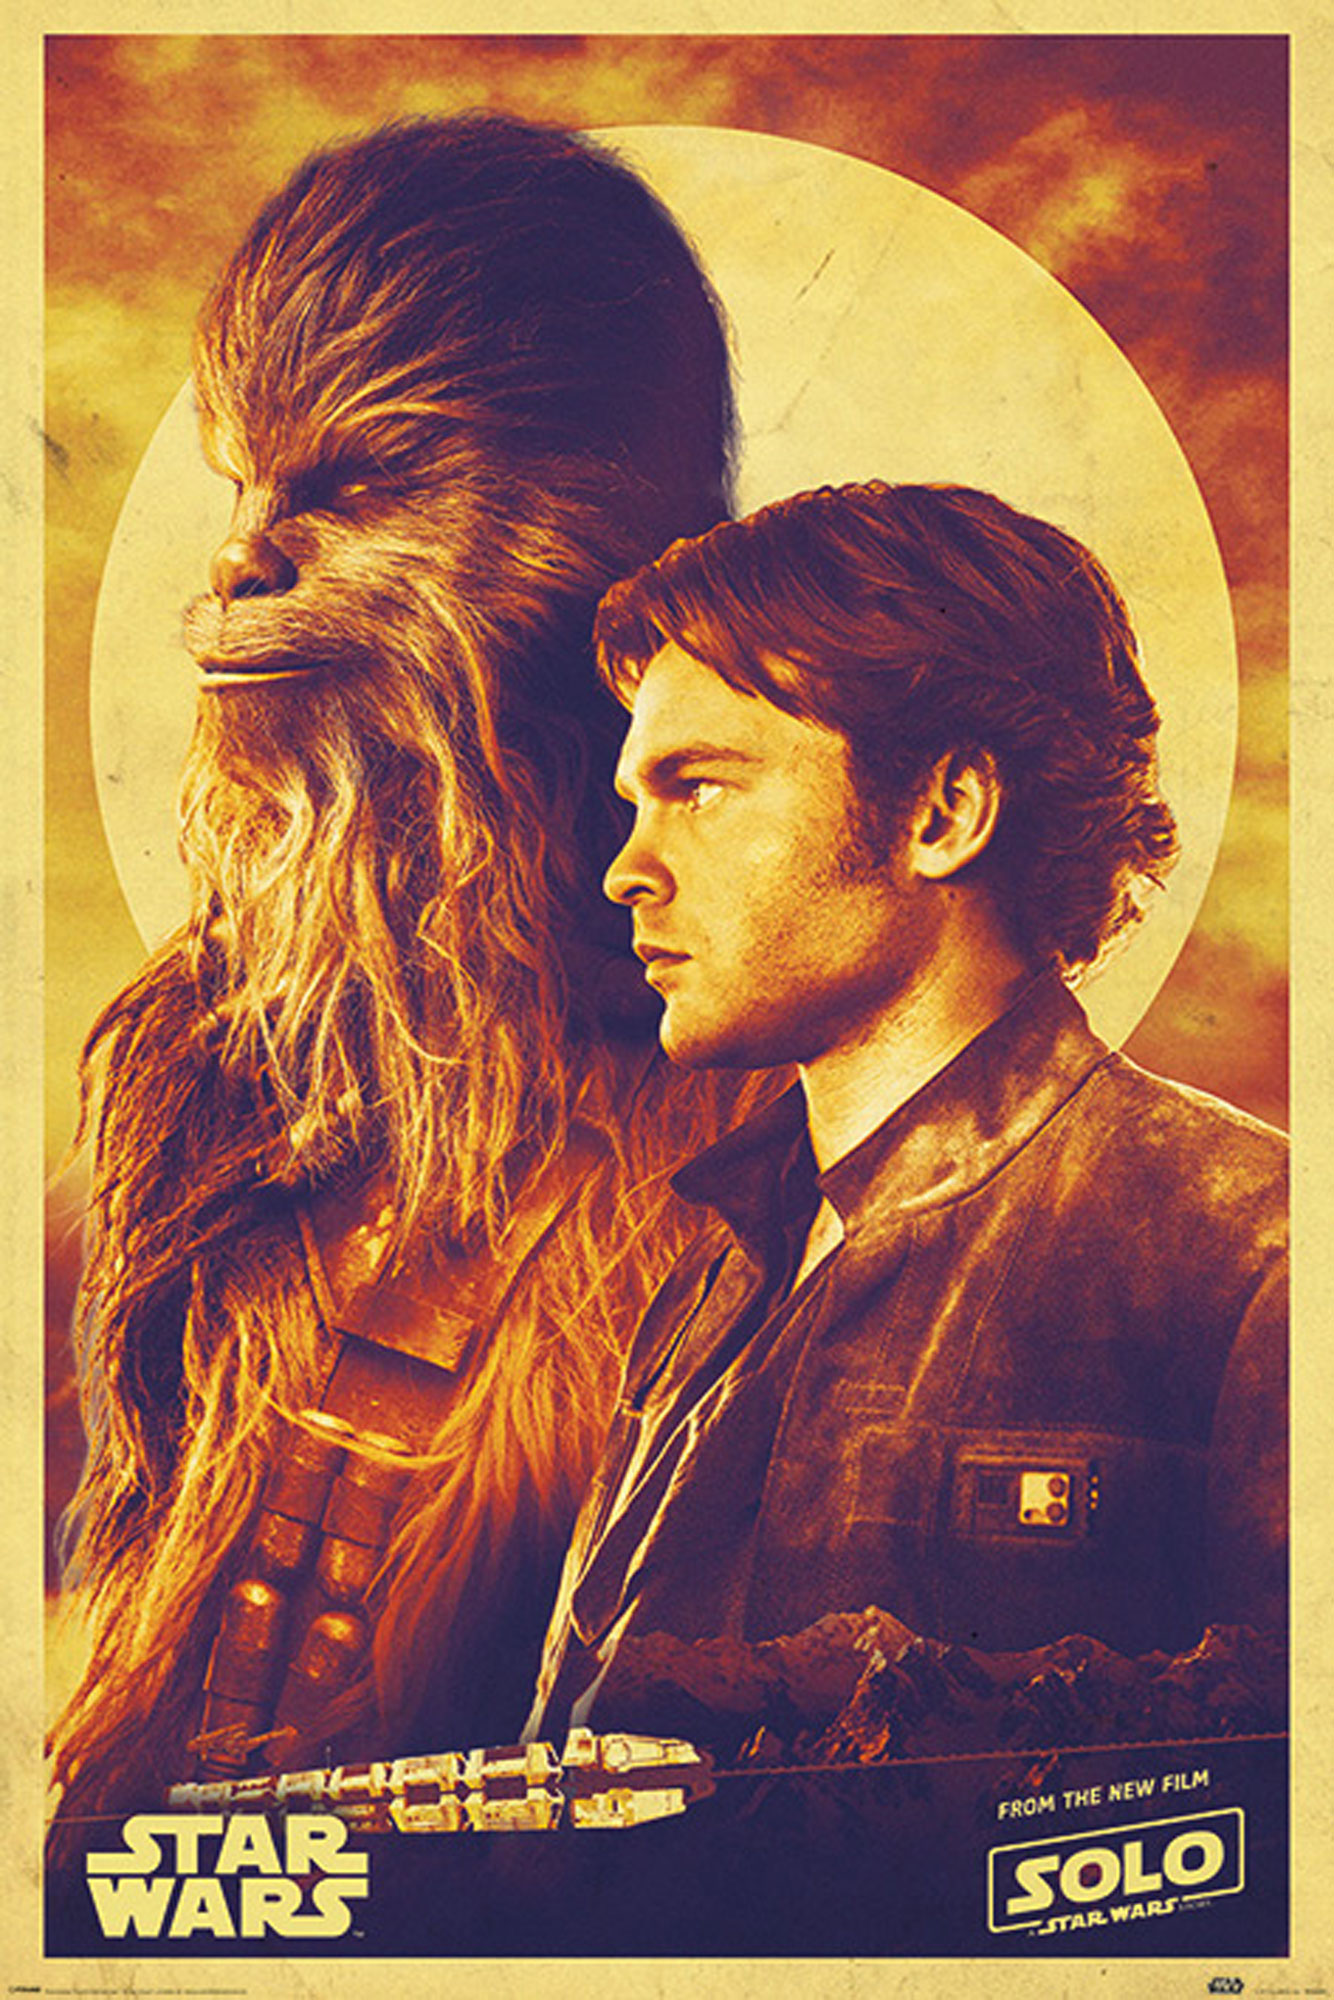 Solo: A Star Wars Story - Han and Chewie - Poster - 61x91,5